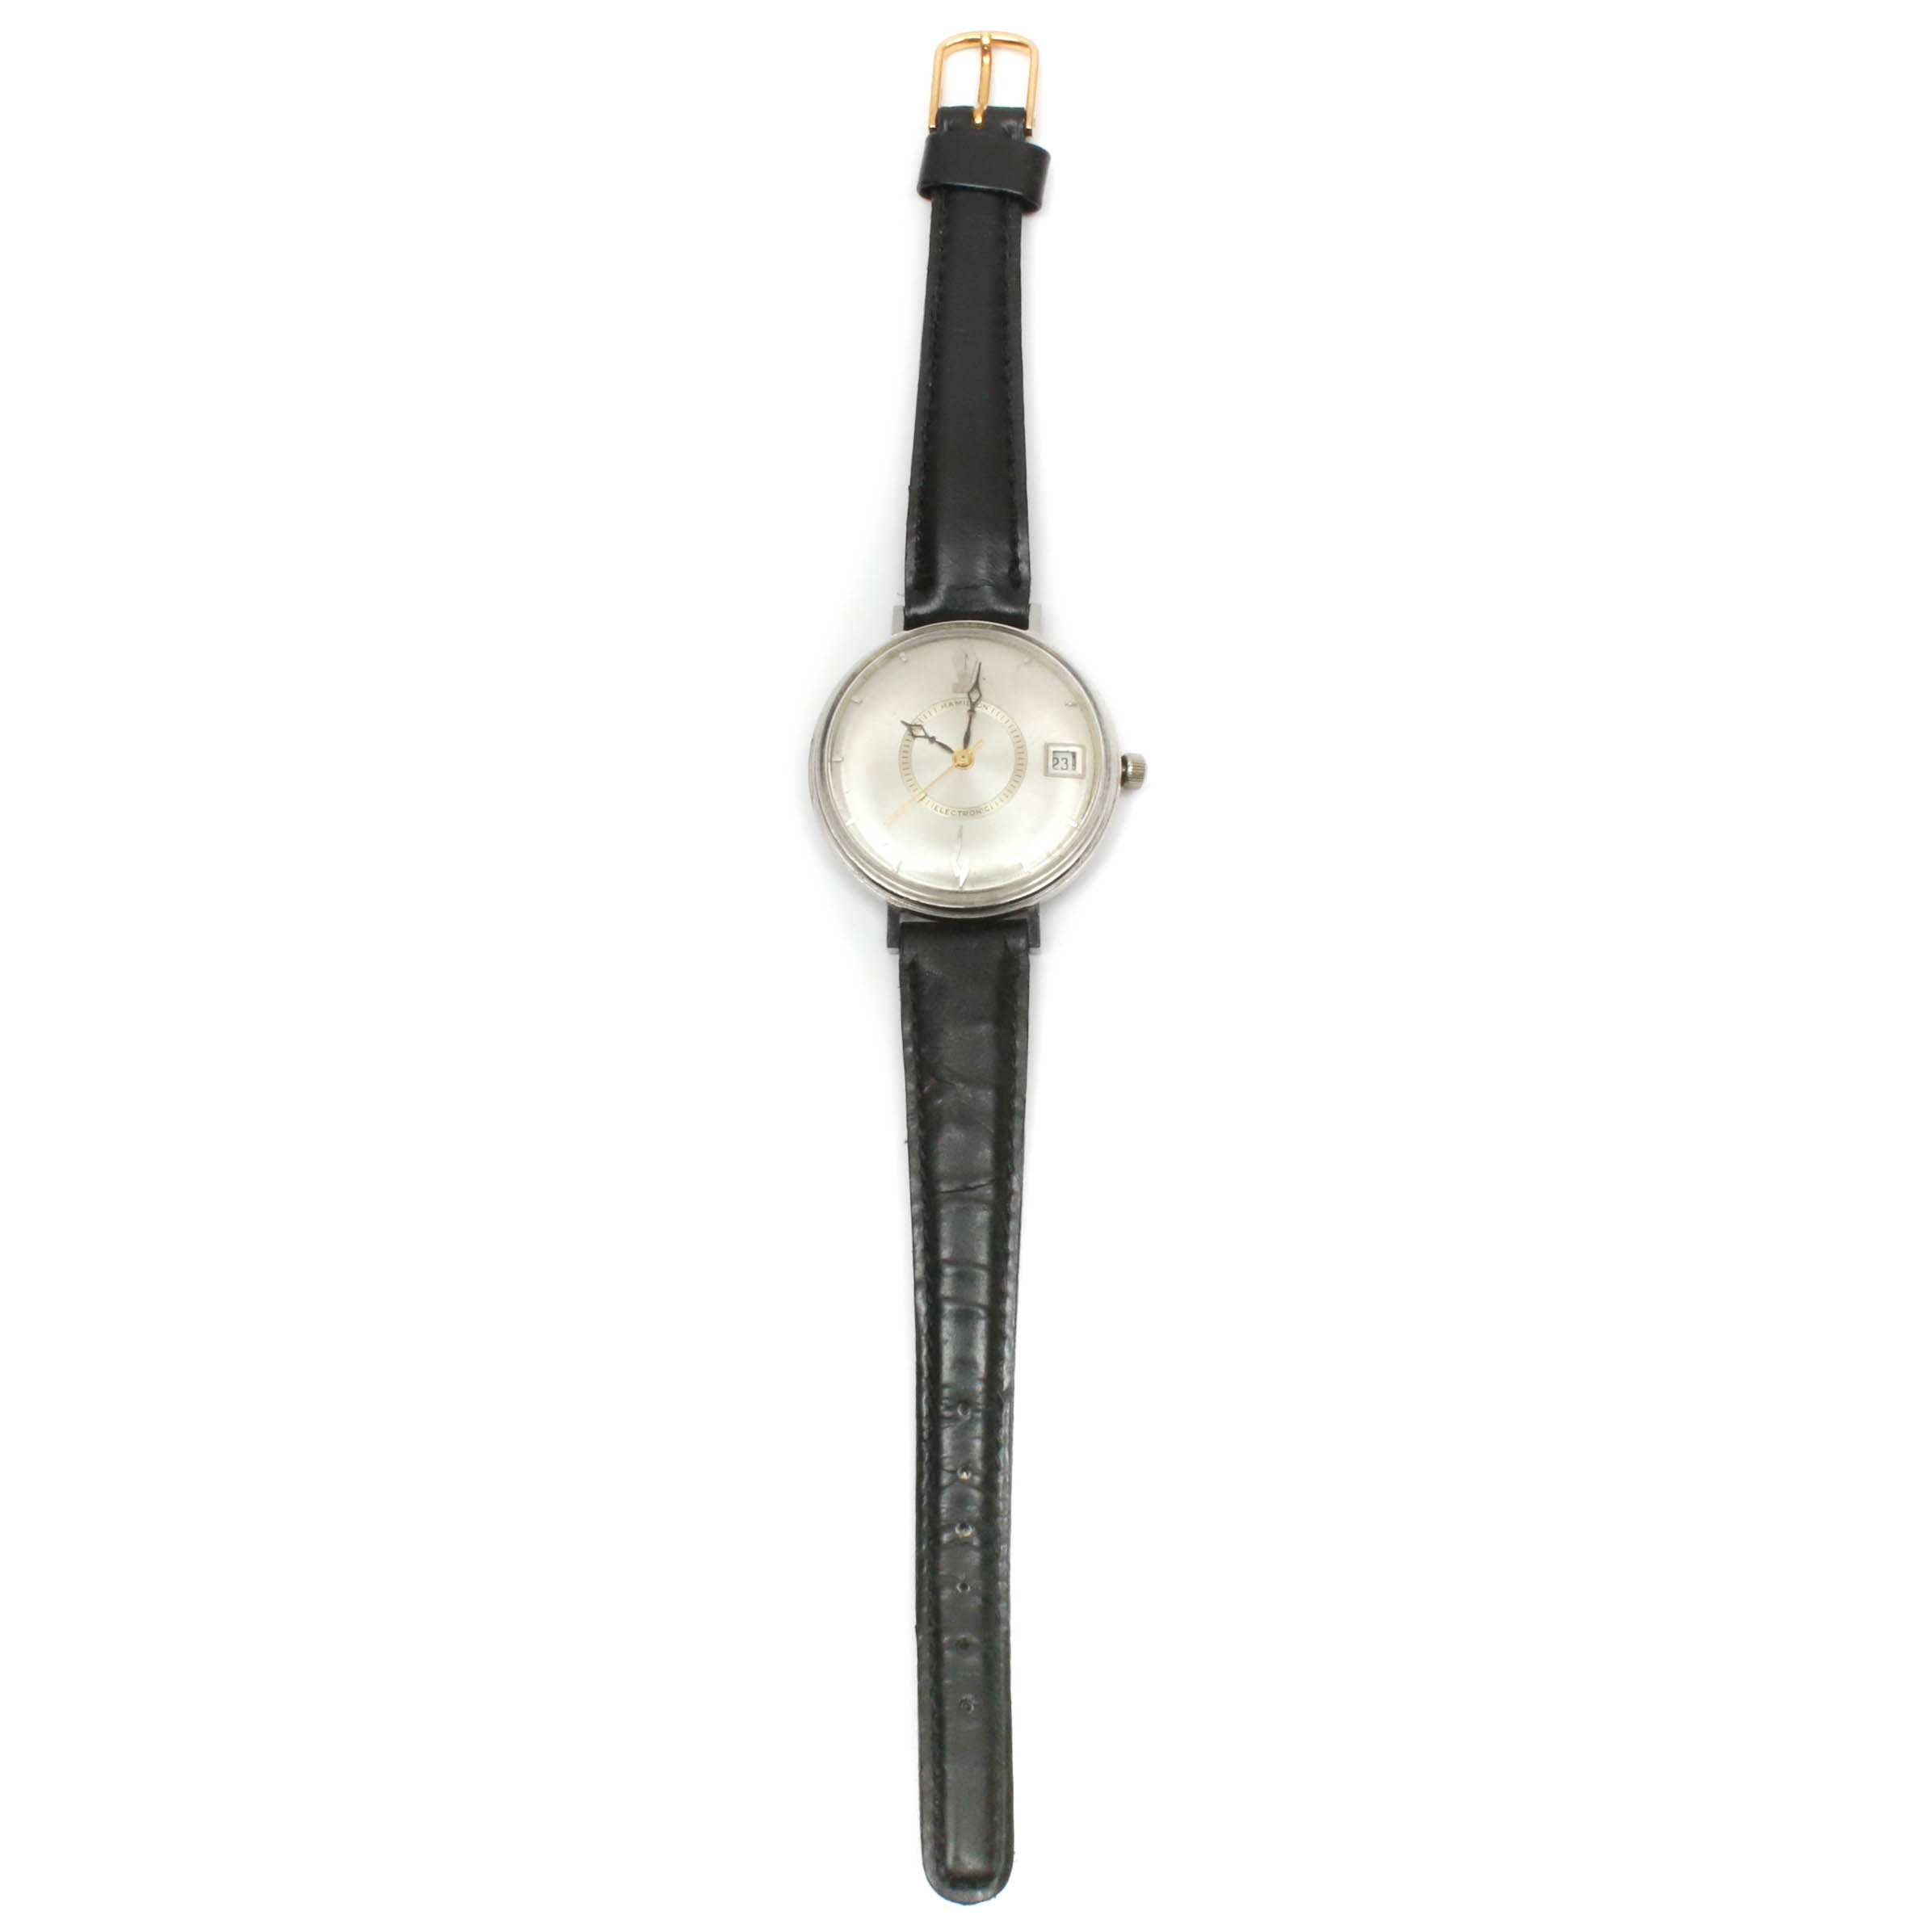 Hamilton Wristwatch with Leather Band, Mid 20th Century